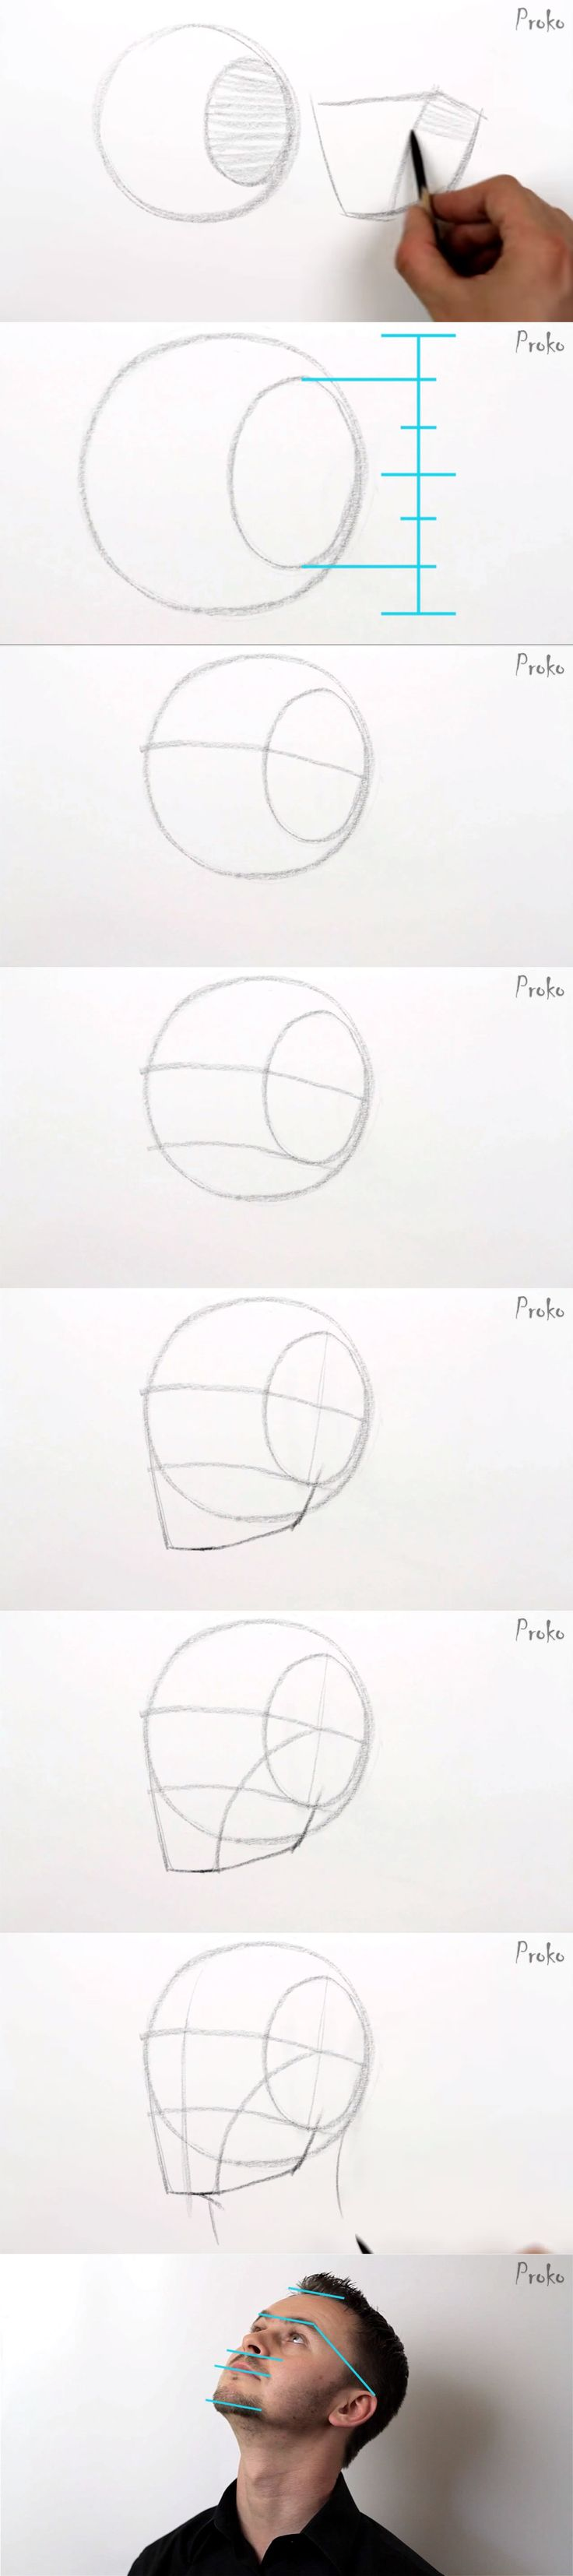 Proko – How to Draw the Head